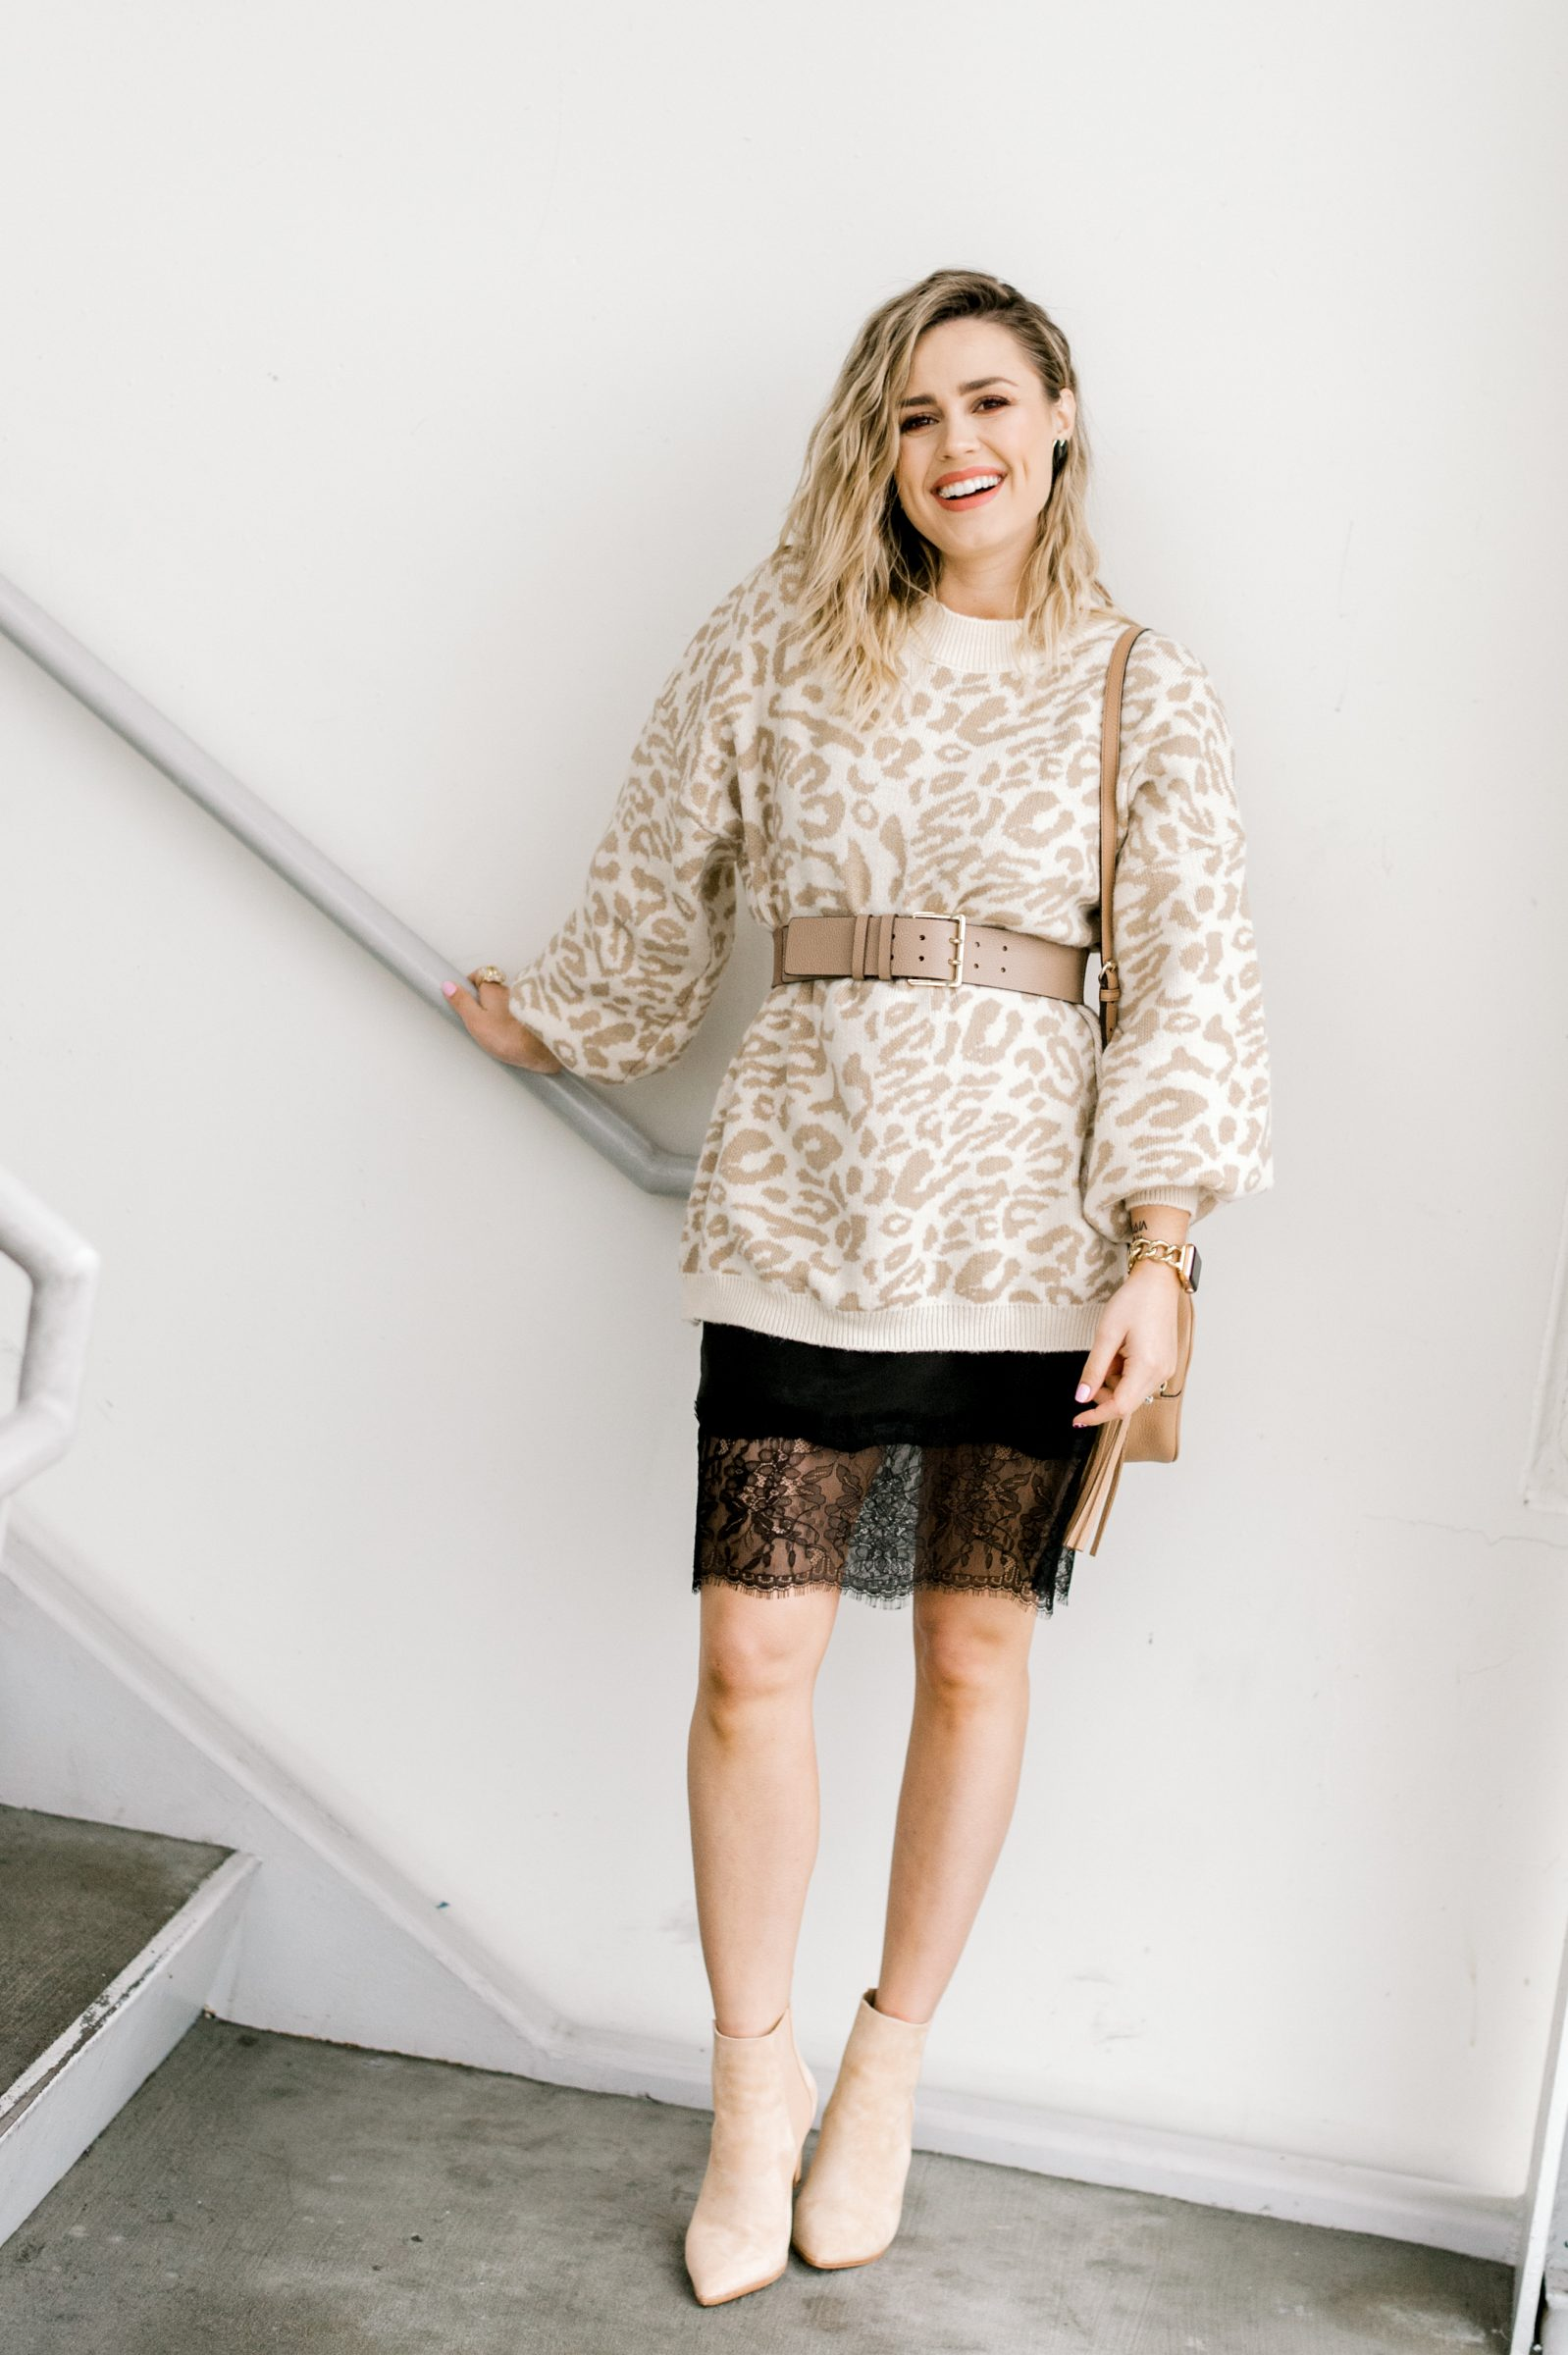 Houston fashion blogger Uptown with Elly Brown wears a leopard sweater belted with a slip dress